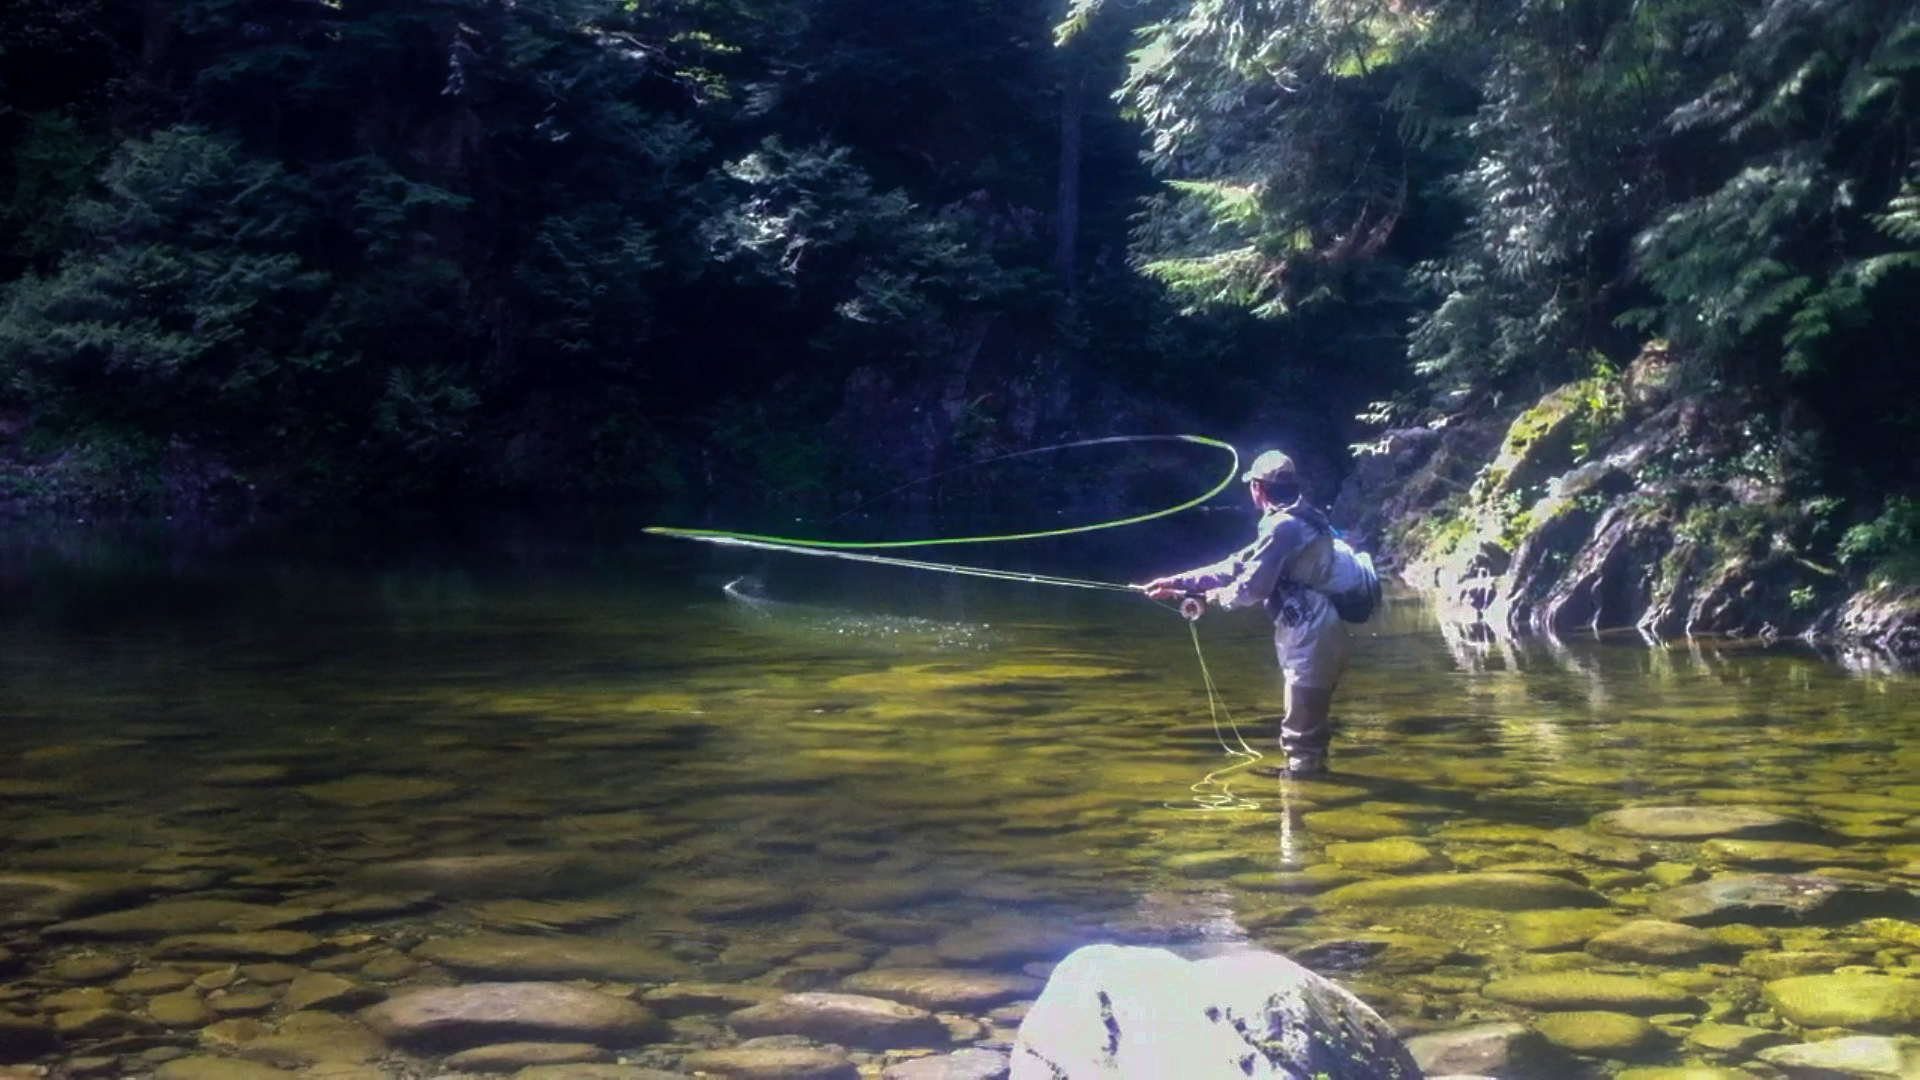 an introduction to the sport of fly fishing in nature Fly fishing and fly casting videos from on the fly productions if you're into fly fishing then this is the video channel for you, one of the most popular fl.